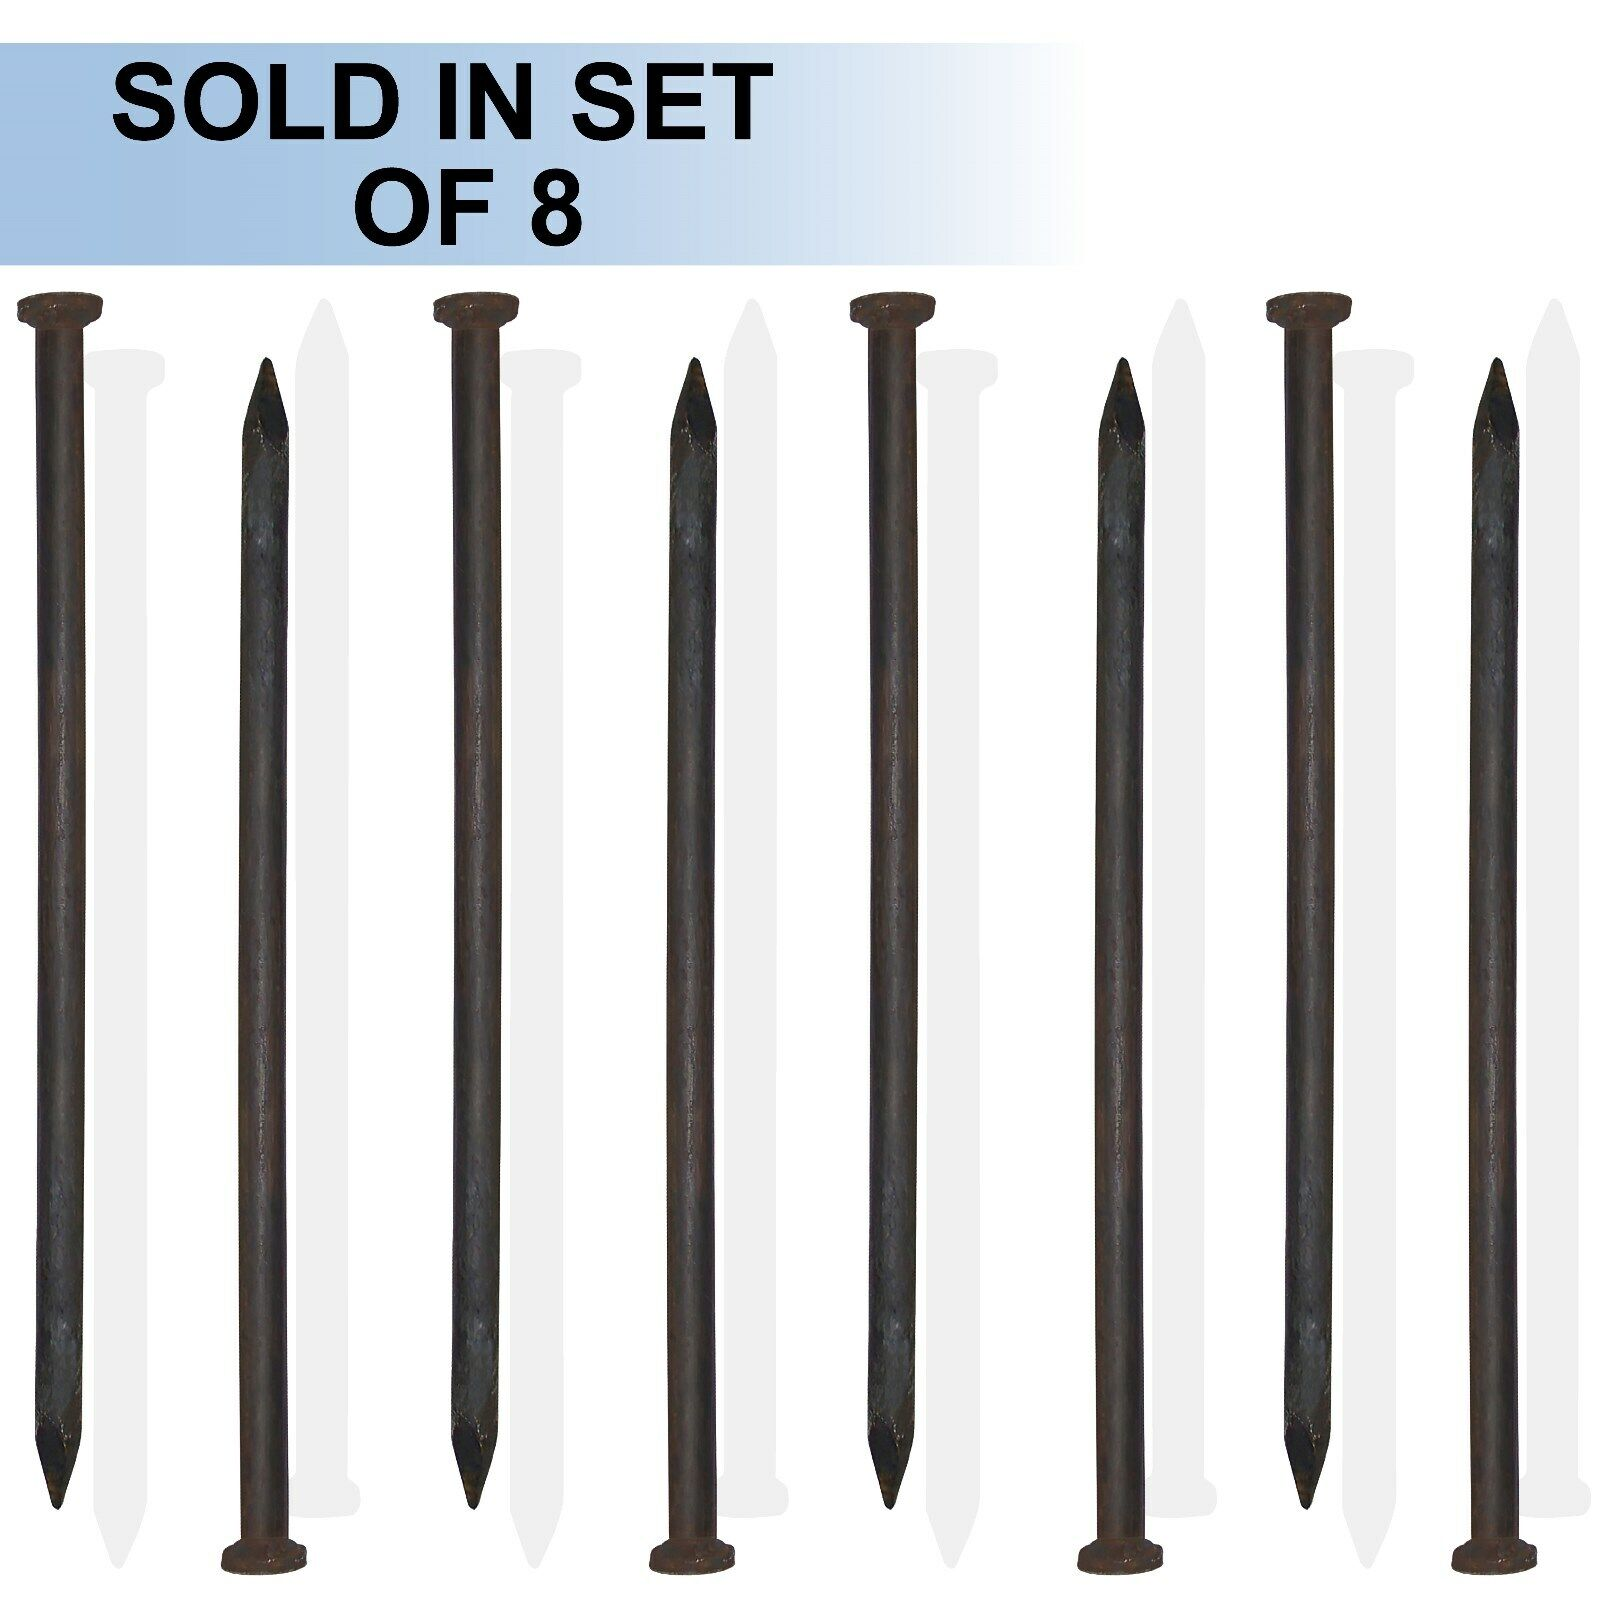 42  x 1  Single Head Tent Stake (Set of 8)  free shipping & exchanges.